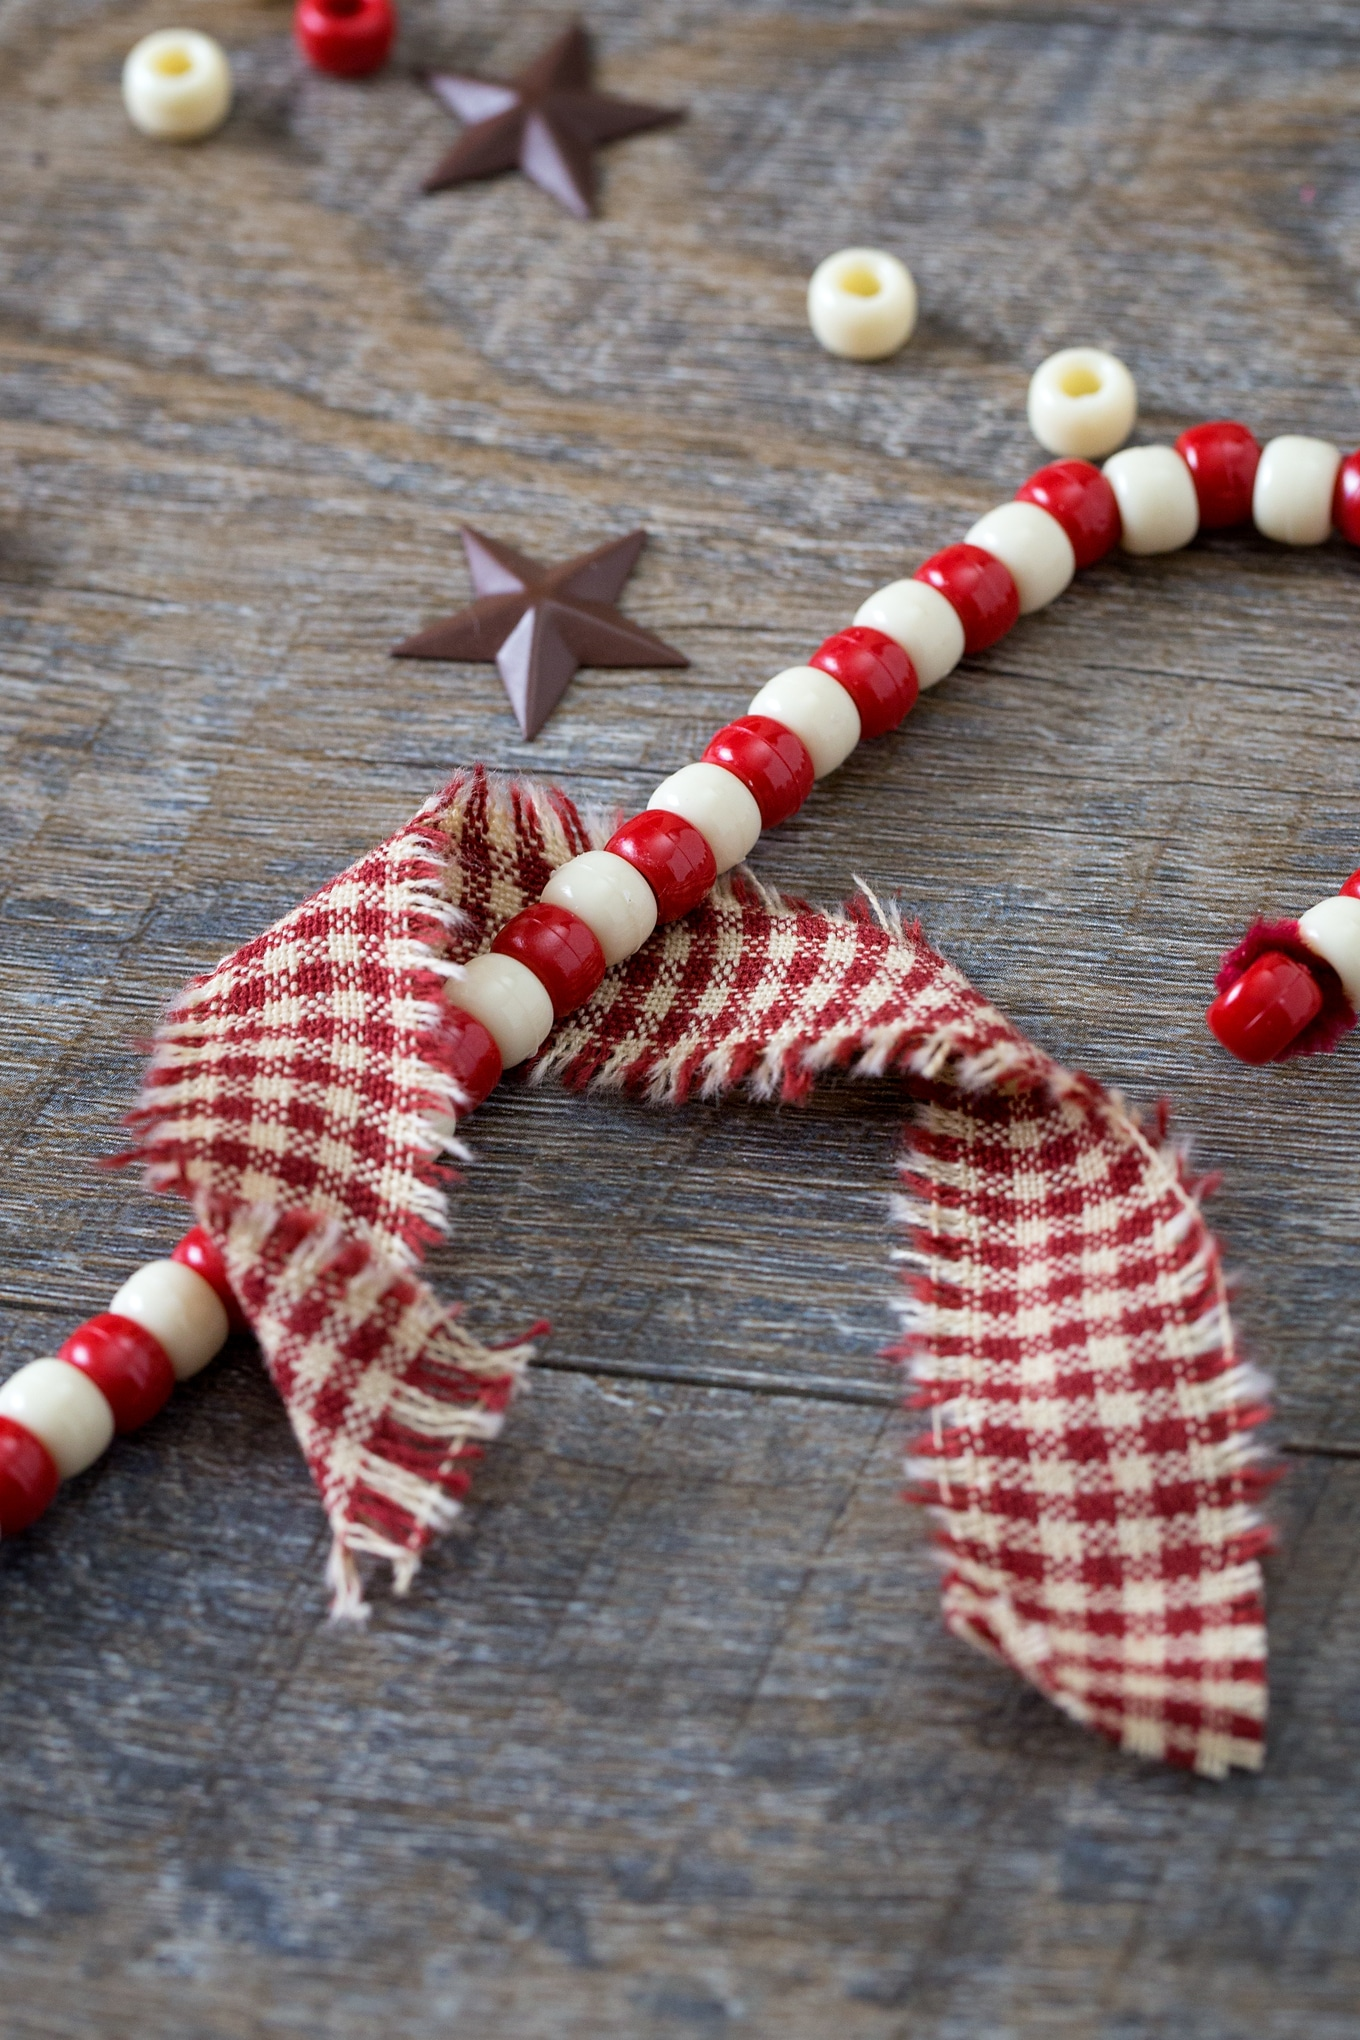 Candy Cane Ornaments with Pipe Cleaners and Fabric